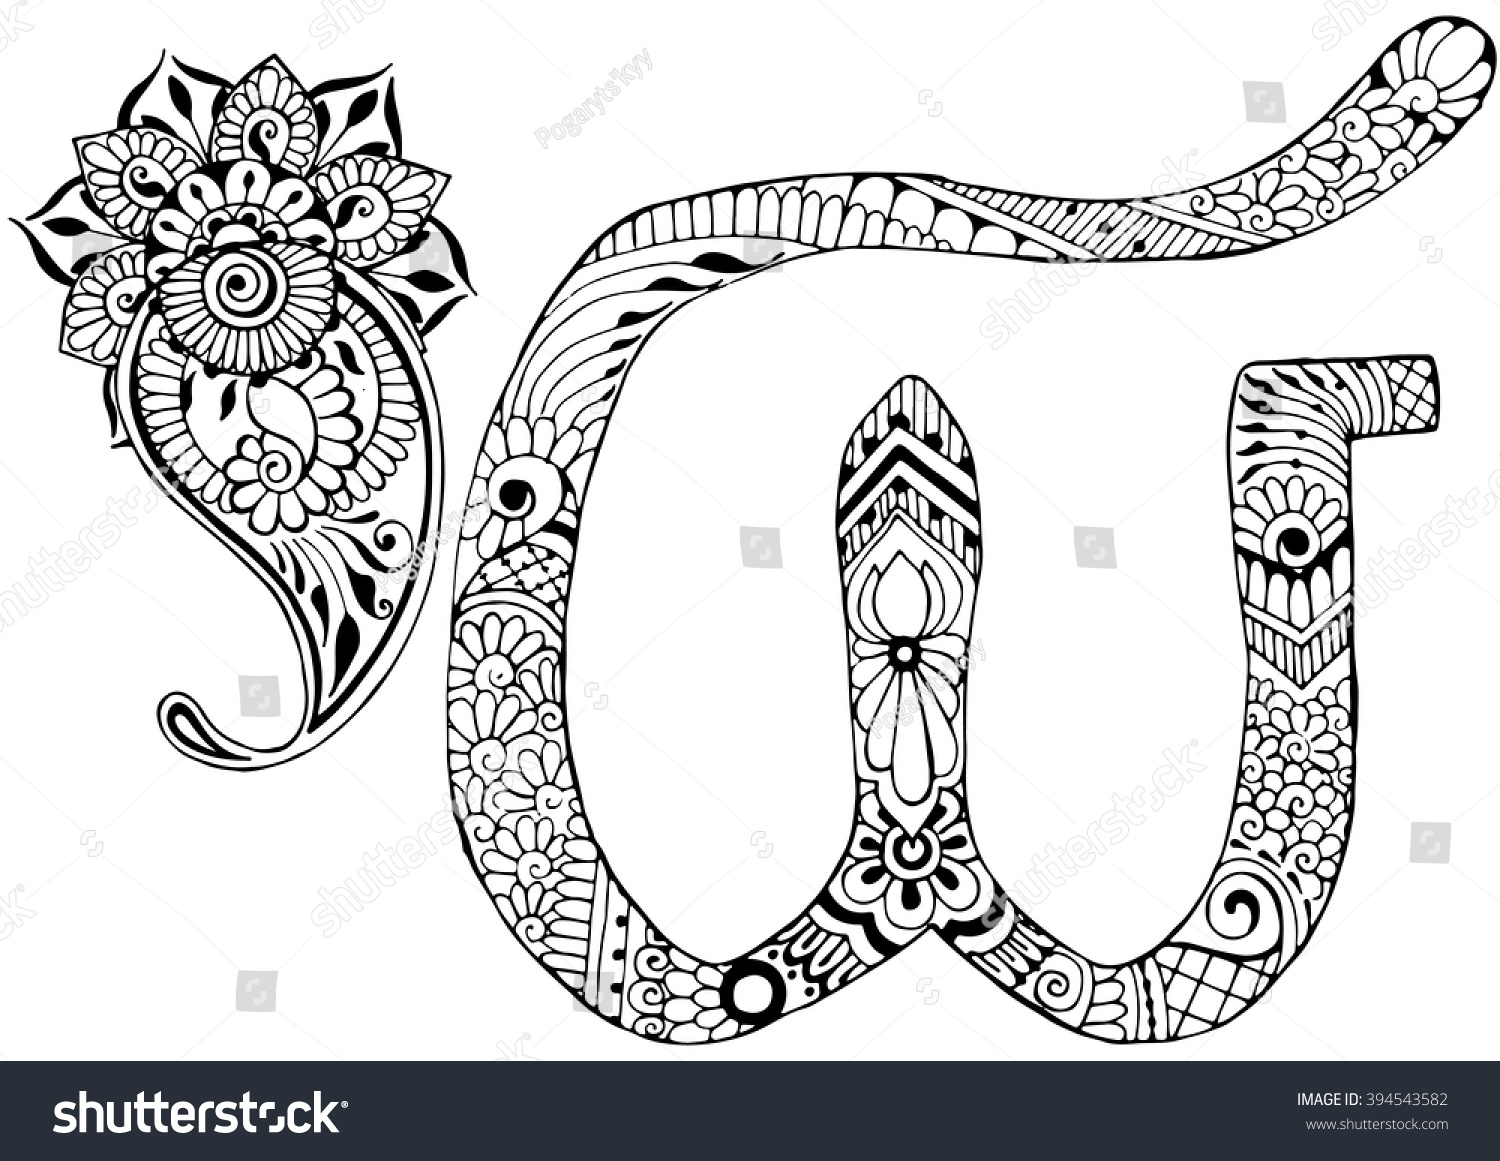 Letter W Decorated In The Style Of Mehndi